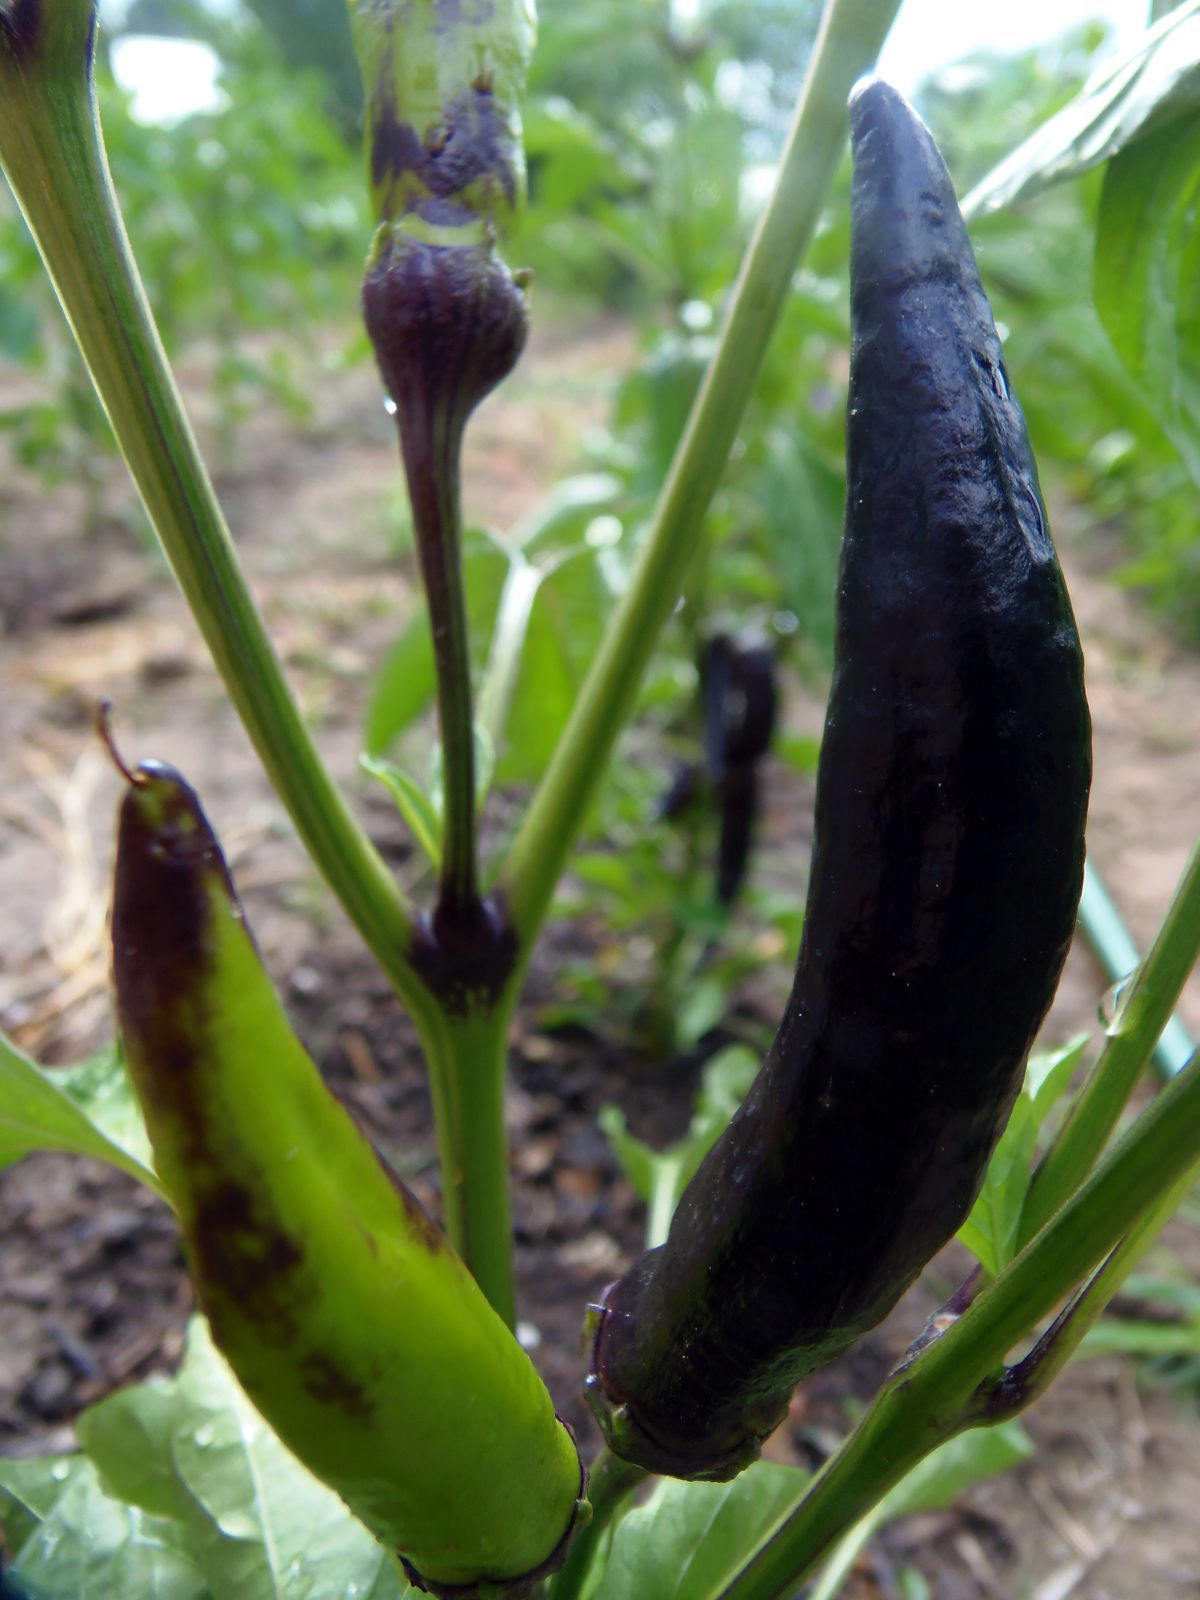 Tasmanian Black Hot Pepper - dark, smoky hot, and very rare pepper